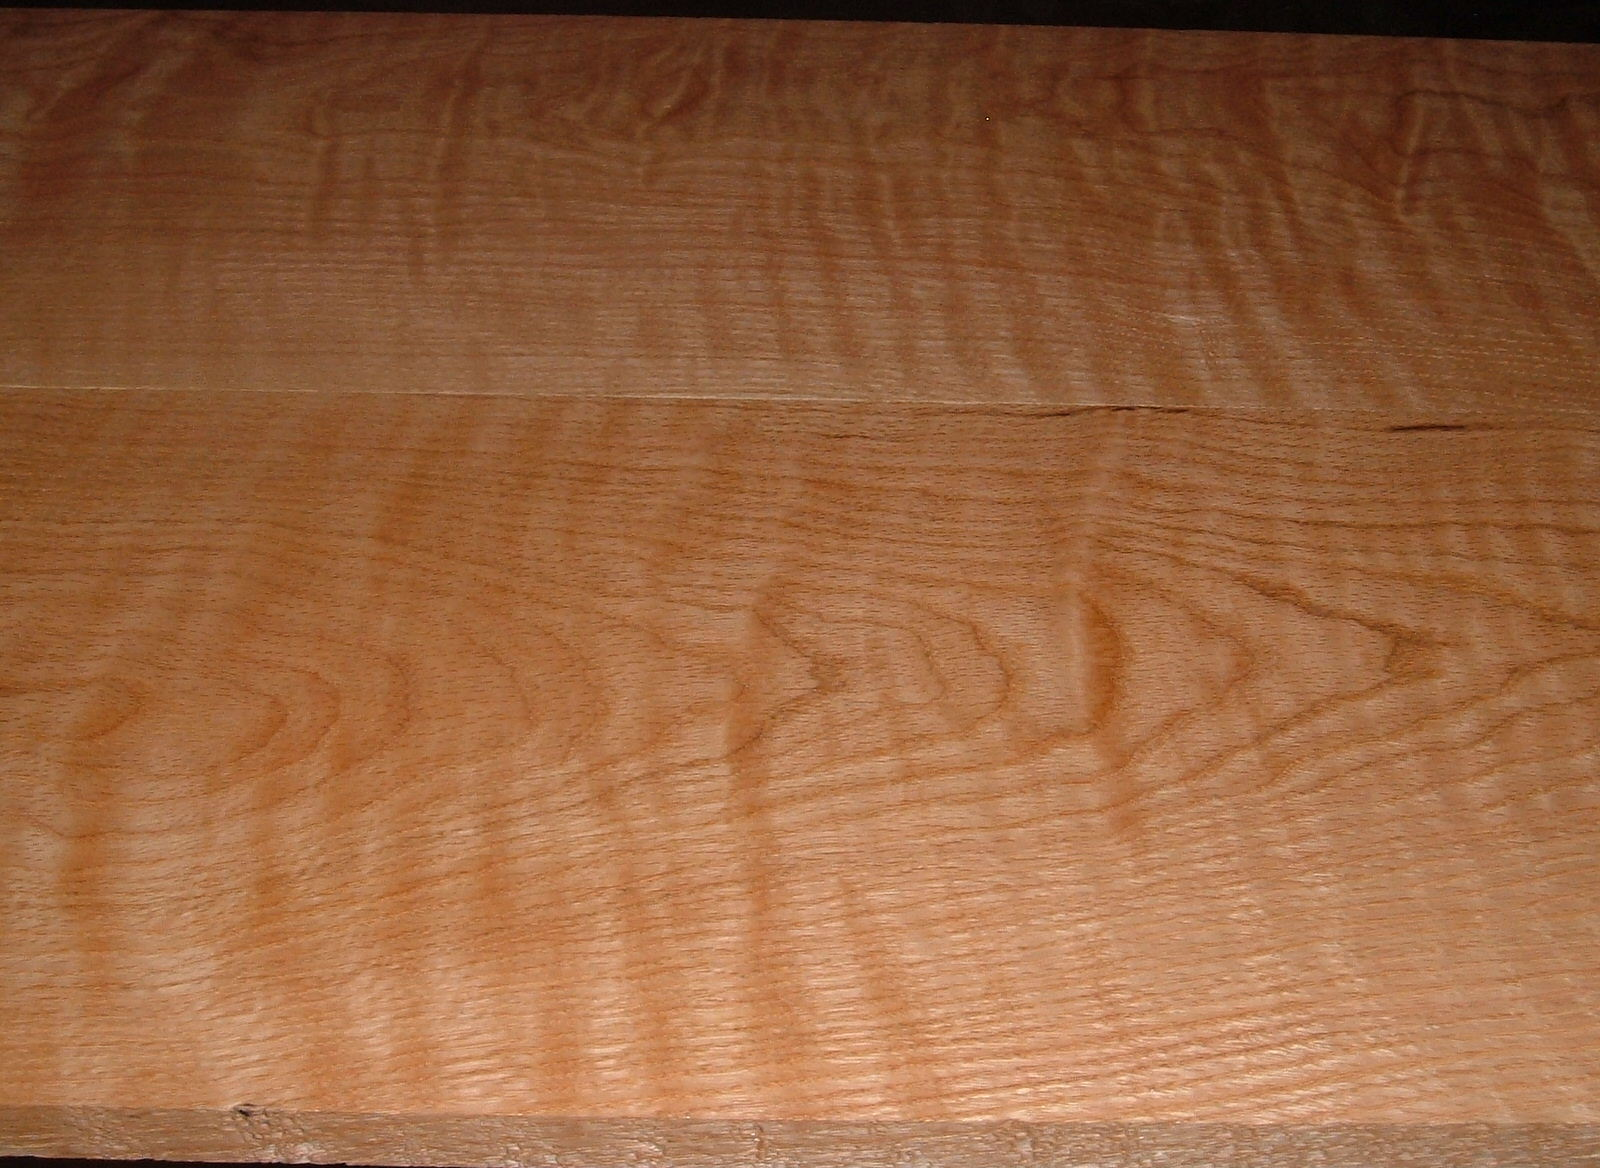 RO2102-13, Curly Figured Tiger Red Oak,13/16x10x45, 13/16x10-1/2x45, Matching Set, Cut From The Same Plank